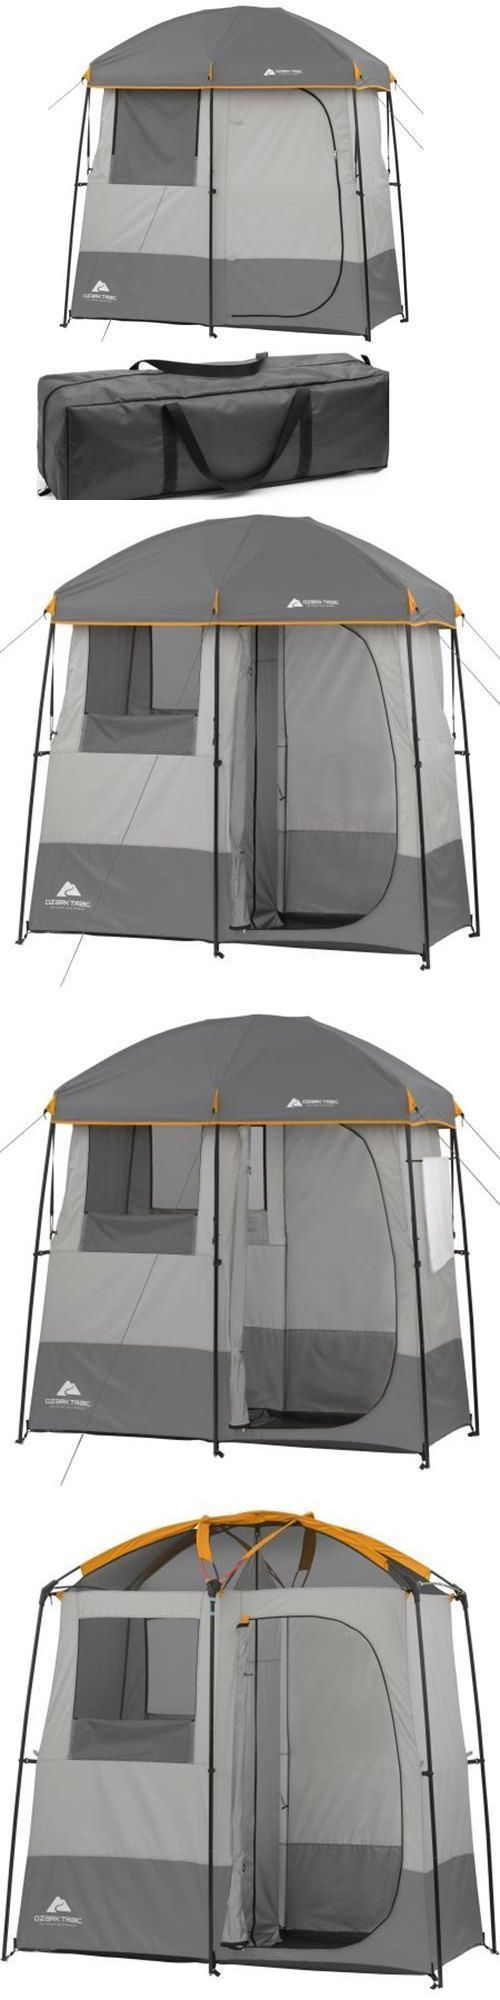 Tents 179010: Camping Shower Tent Outdoor Changing Room Privacy Pop Up Portable Toilet Tents -> BUY IT NOW ONLY: $79.95 on eBay! http://campingtentlover.com/best-camping-tent-review/ #carcampingprivacy